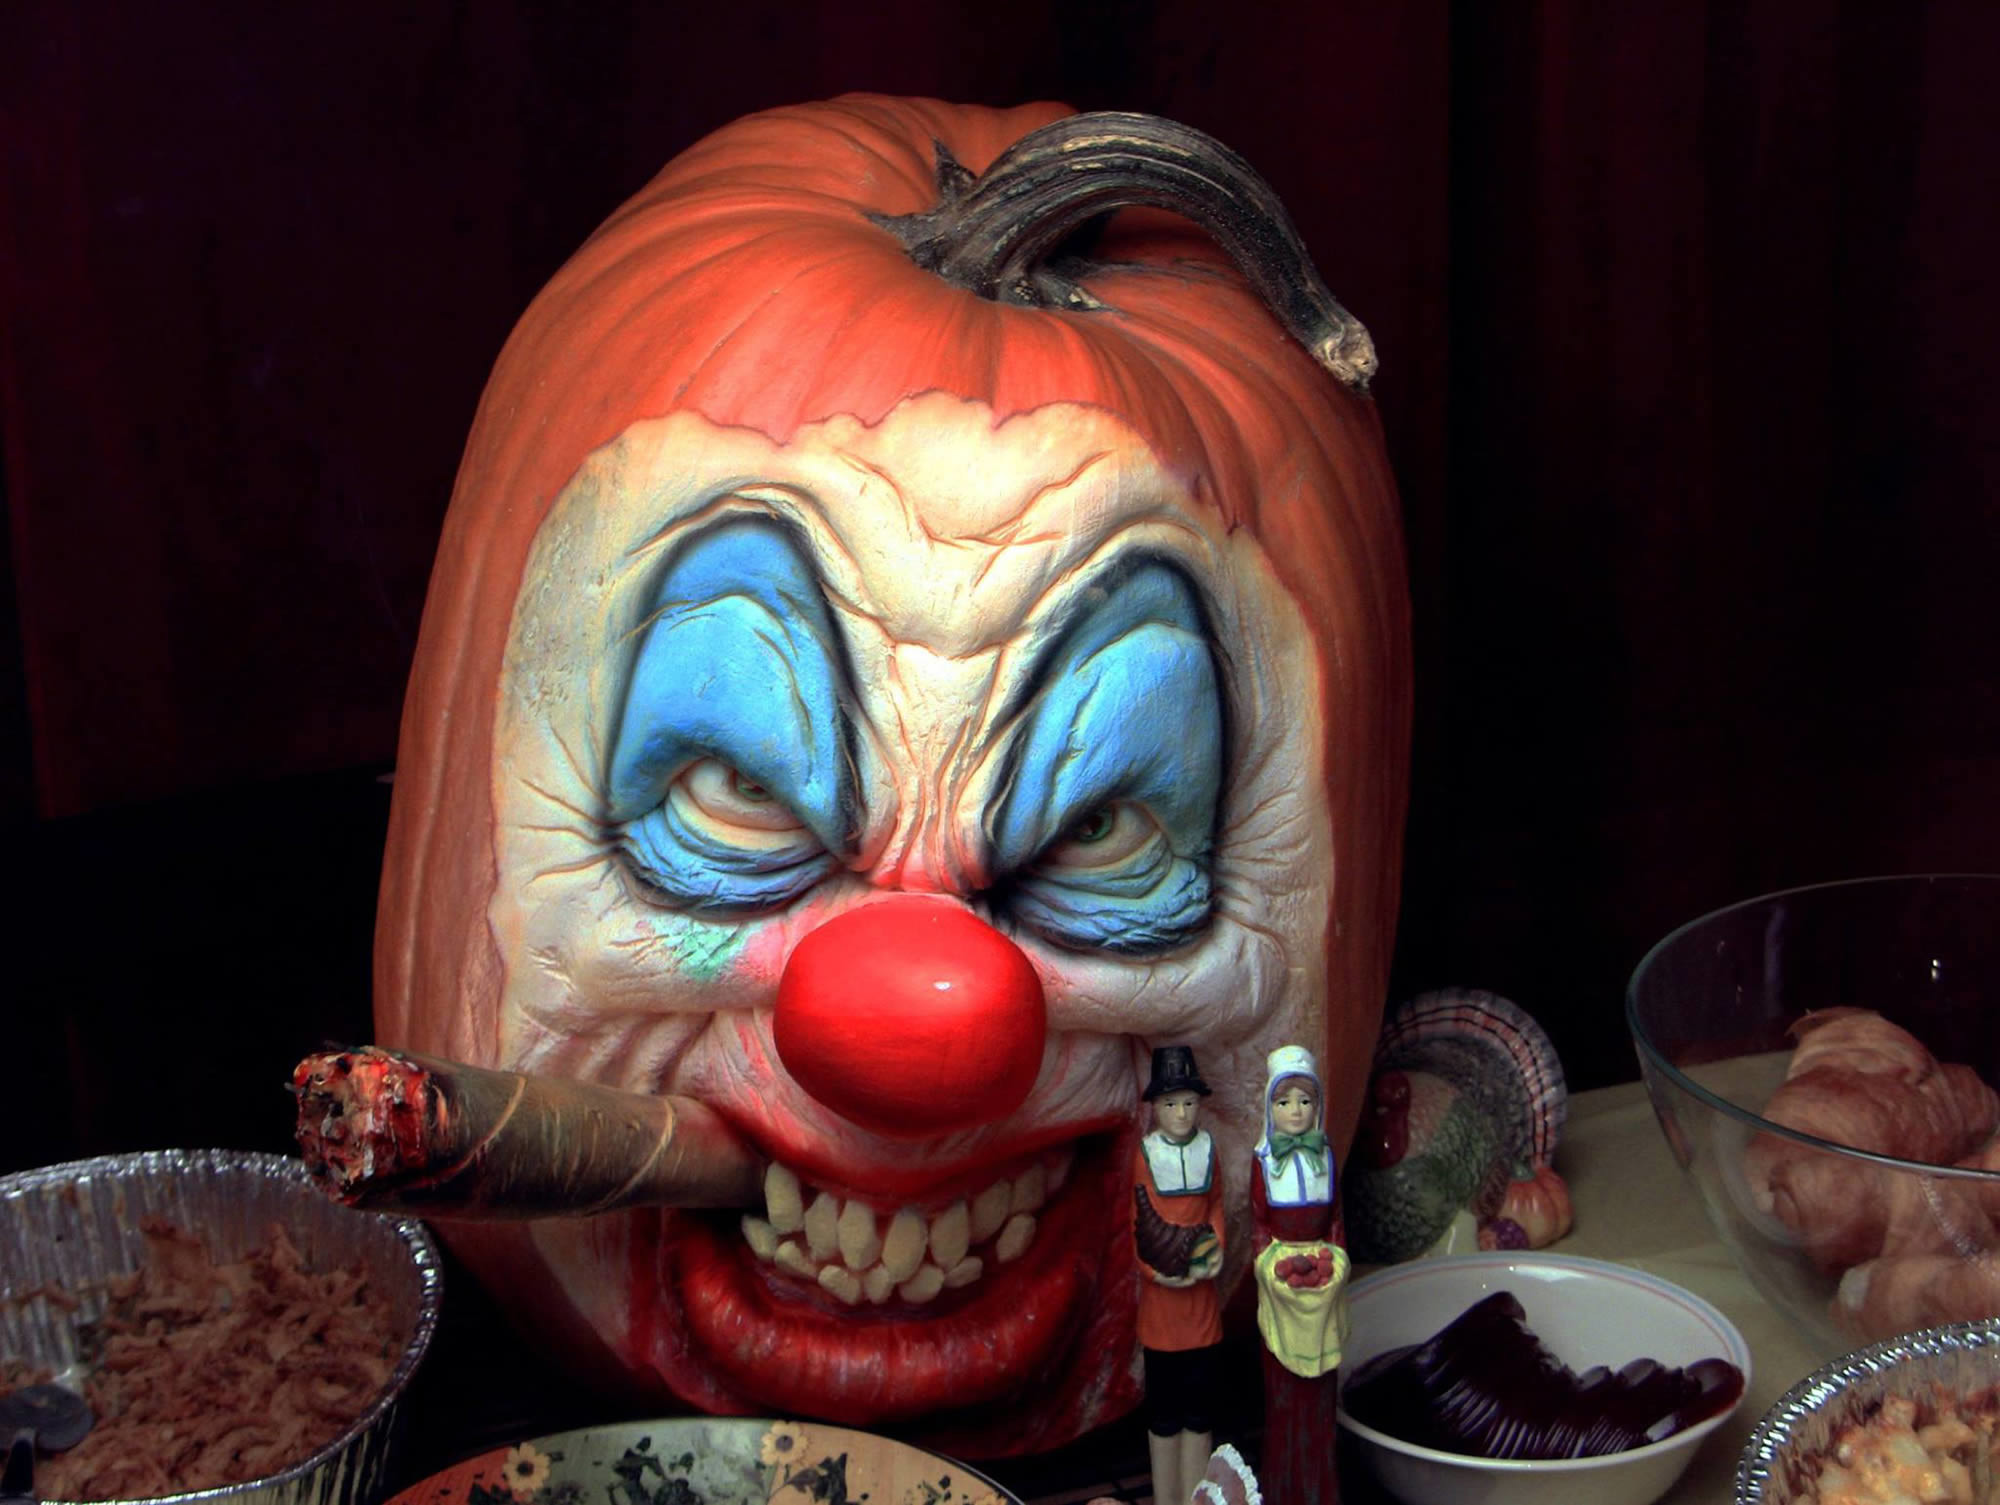 2000x1505 Funny Scary Clown Wallpapers 1024x768PX ~ 3d Evil Jester Wallpaper .